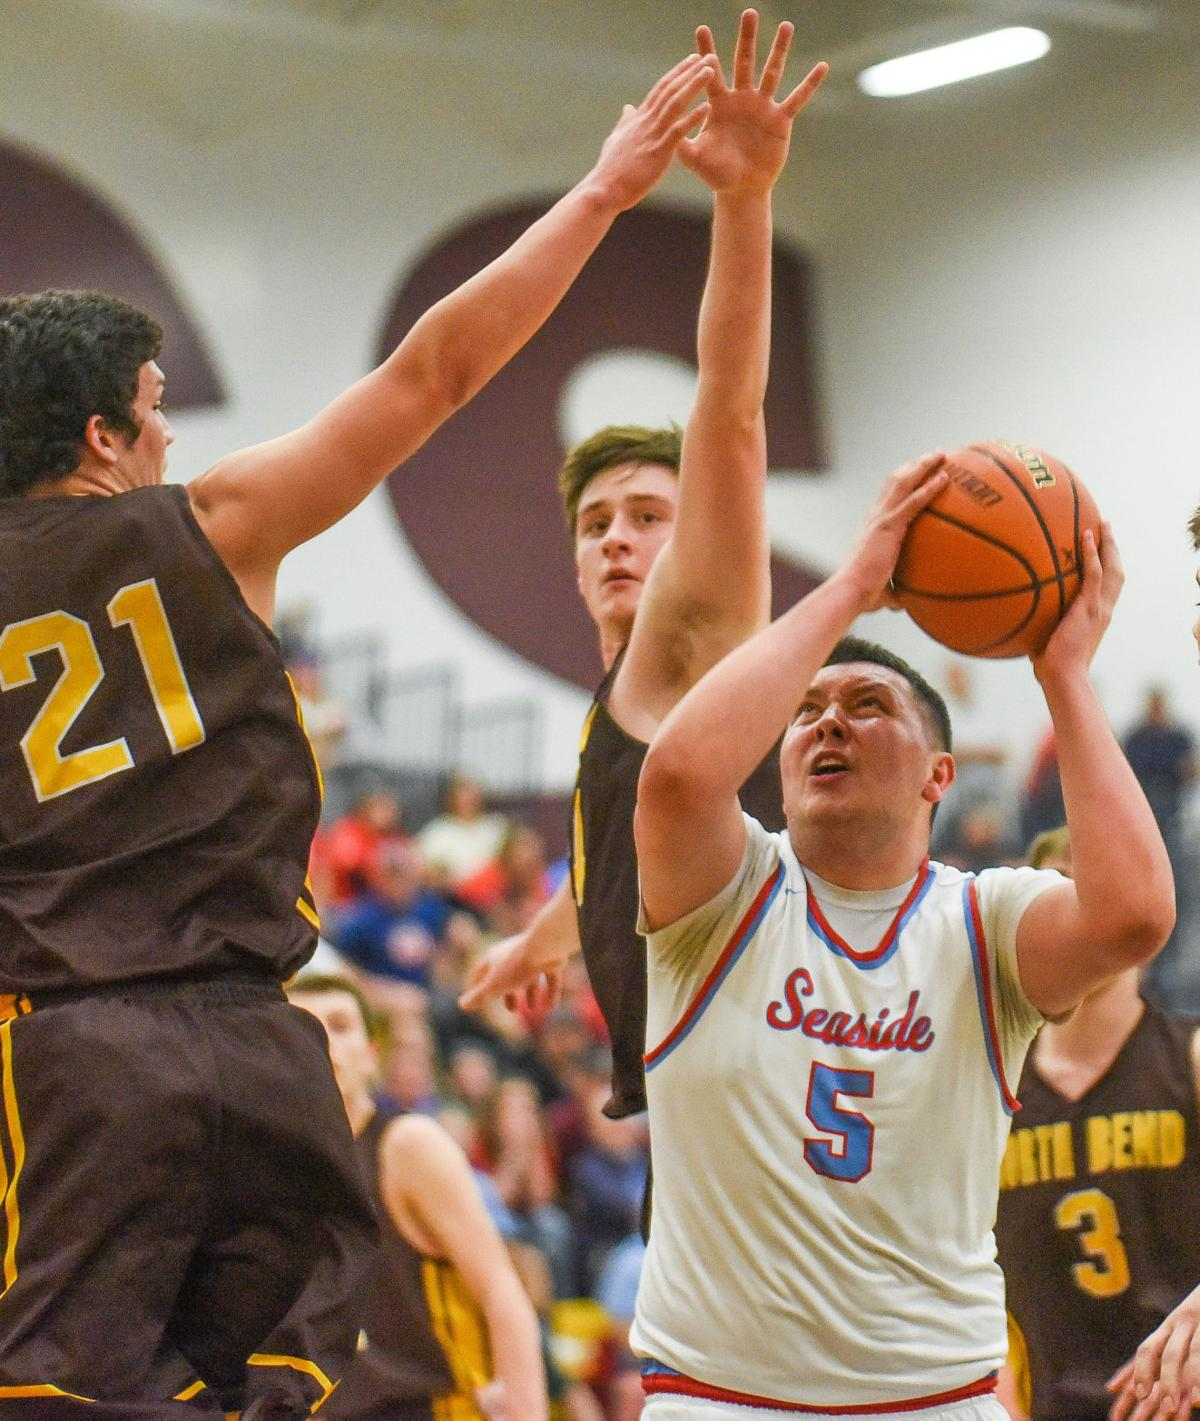 Seaside boys play for state championship after beating North Bend